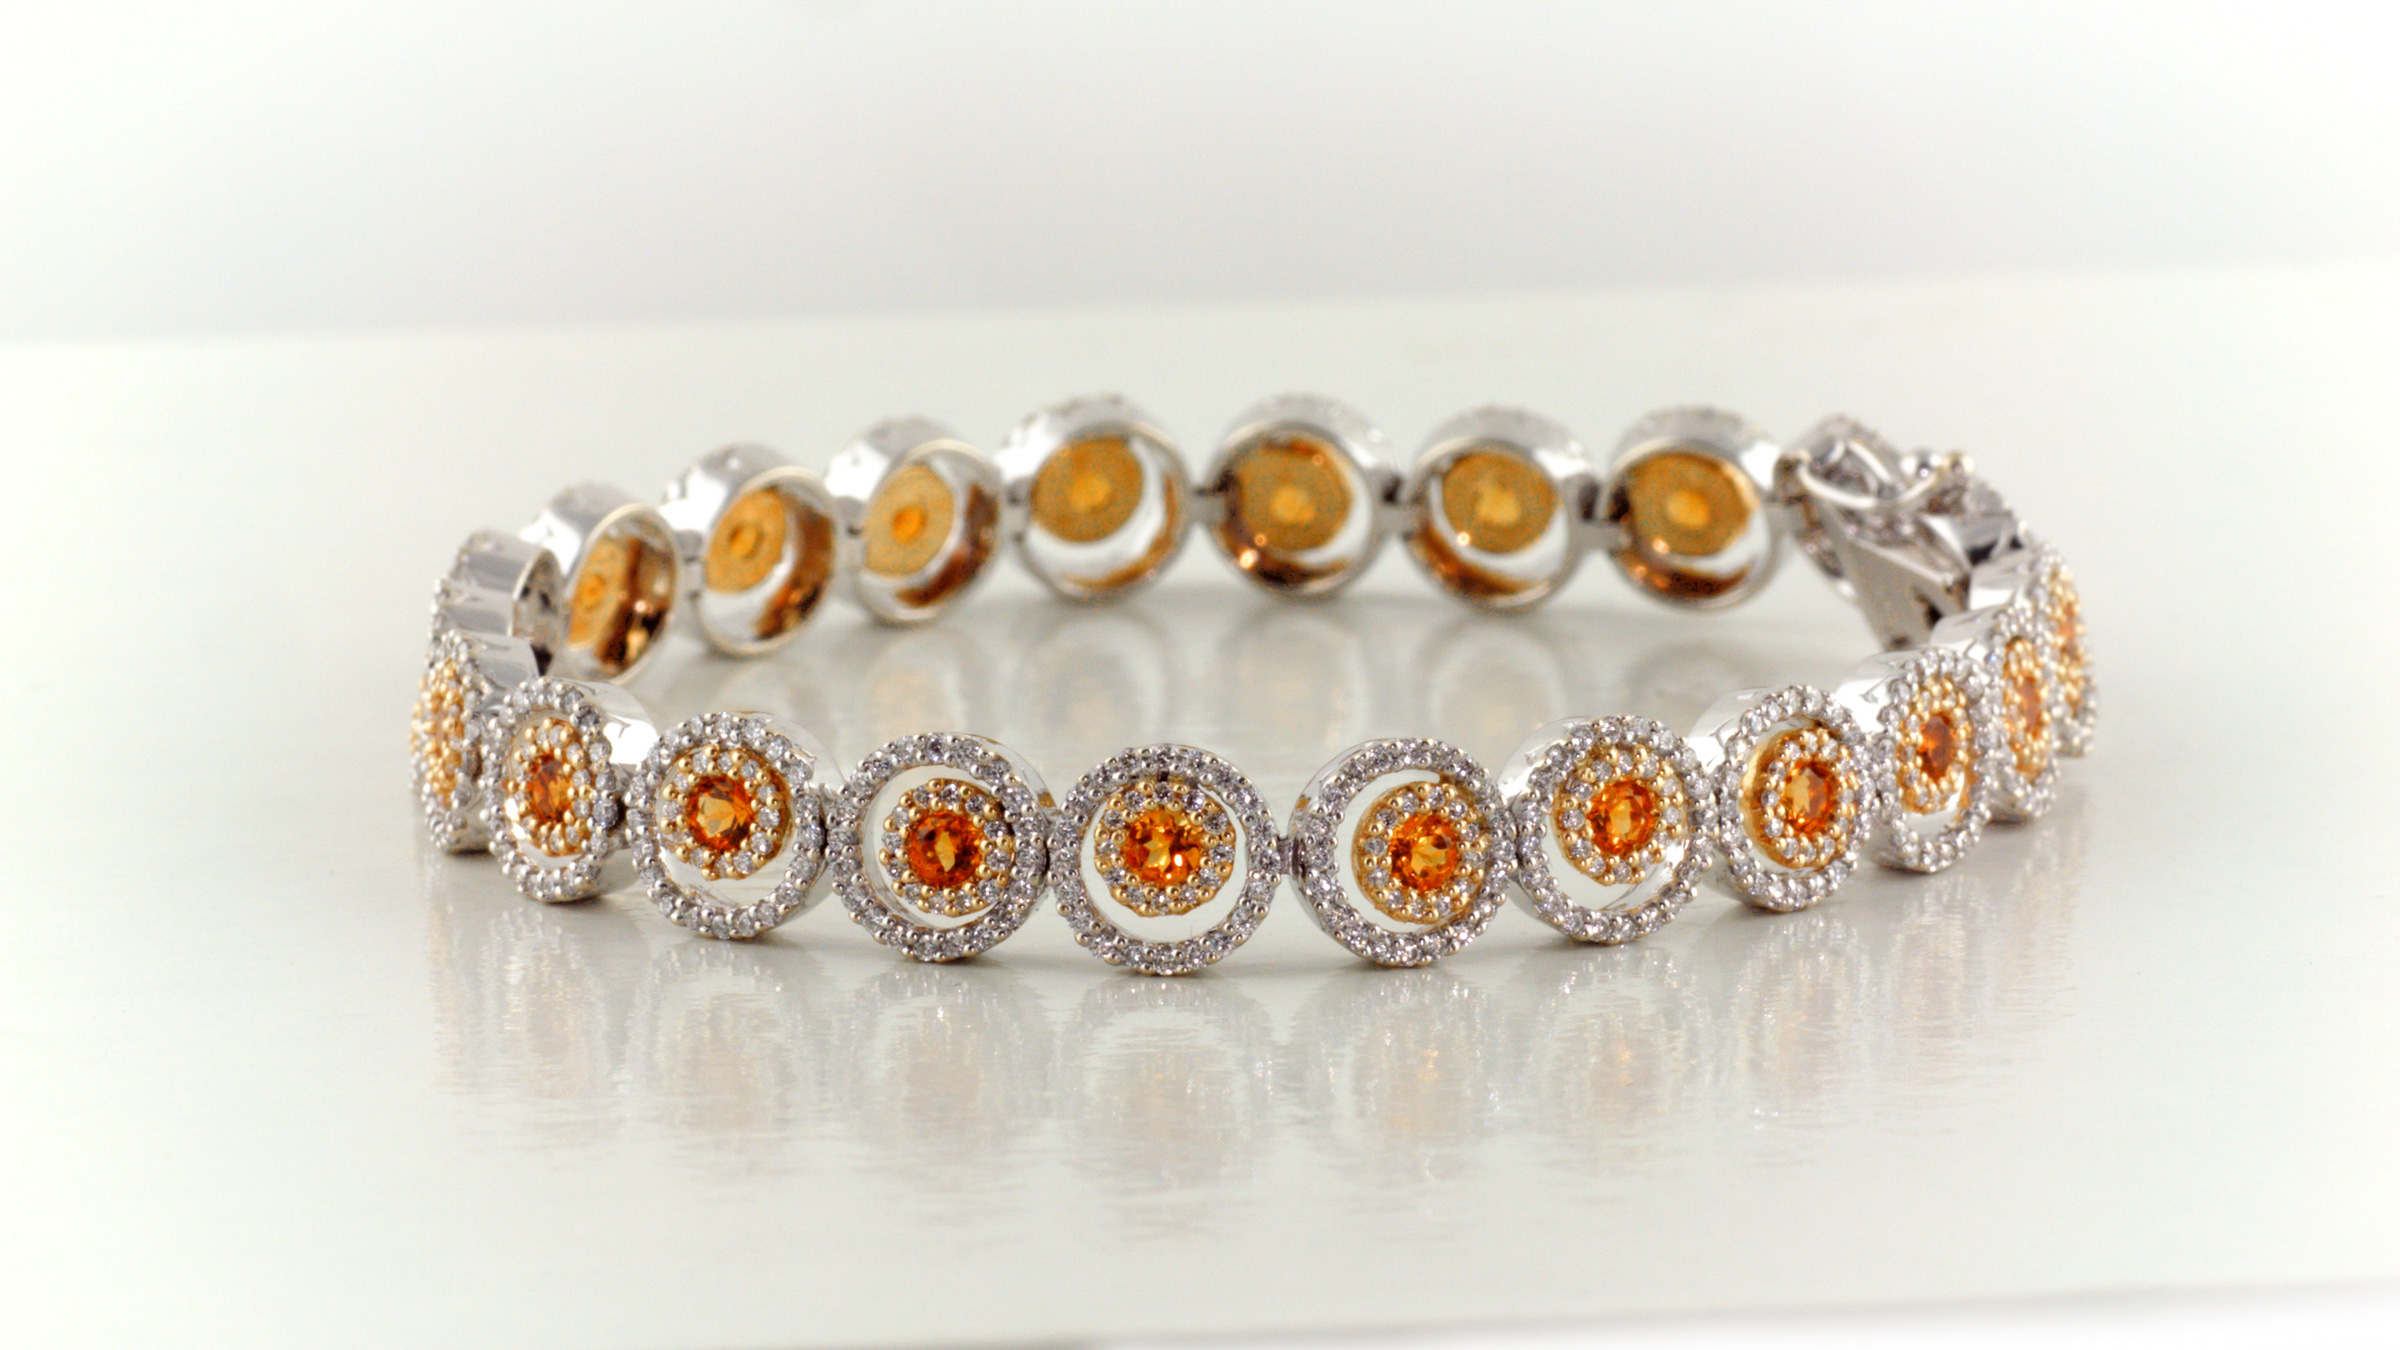 Diamond and citrine bracelet in 14K white gold.